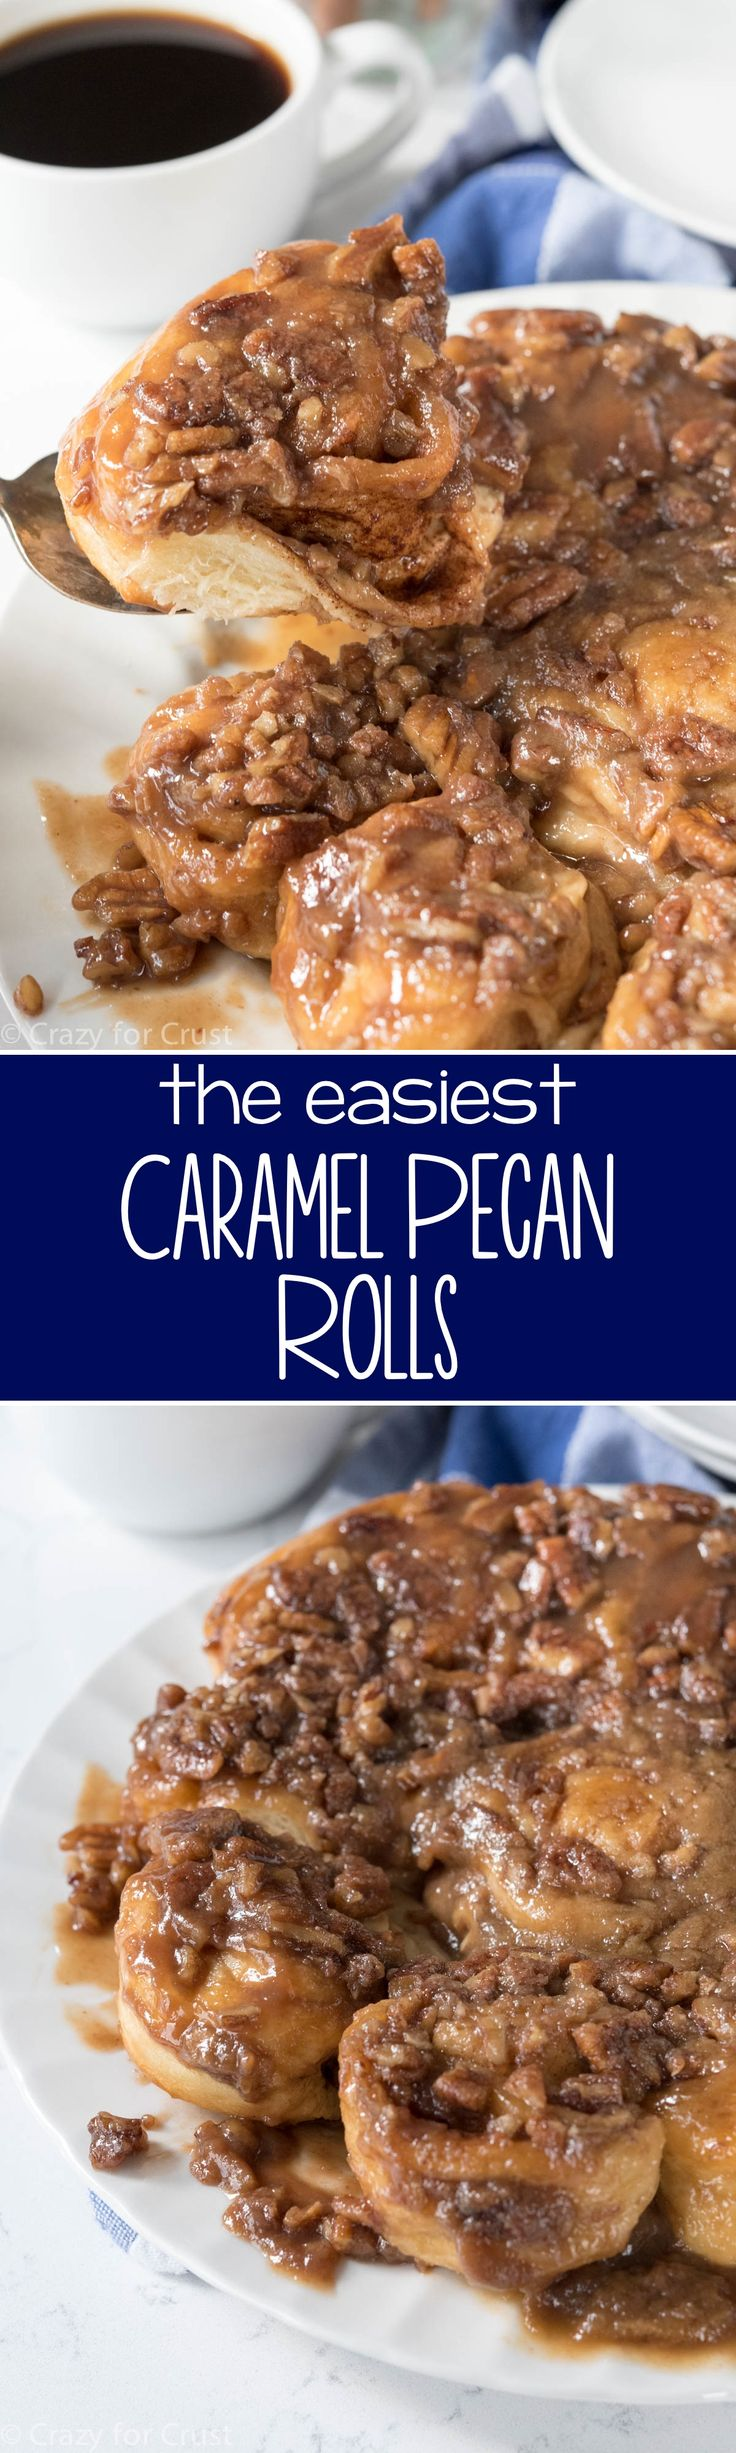 Easy Caramel Pecan Rolls - Crazy for Crust